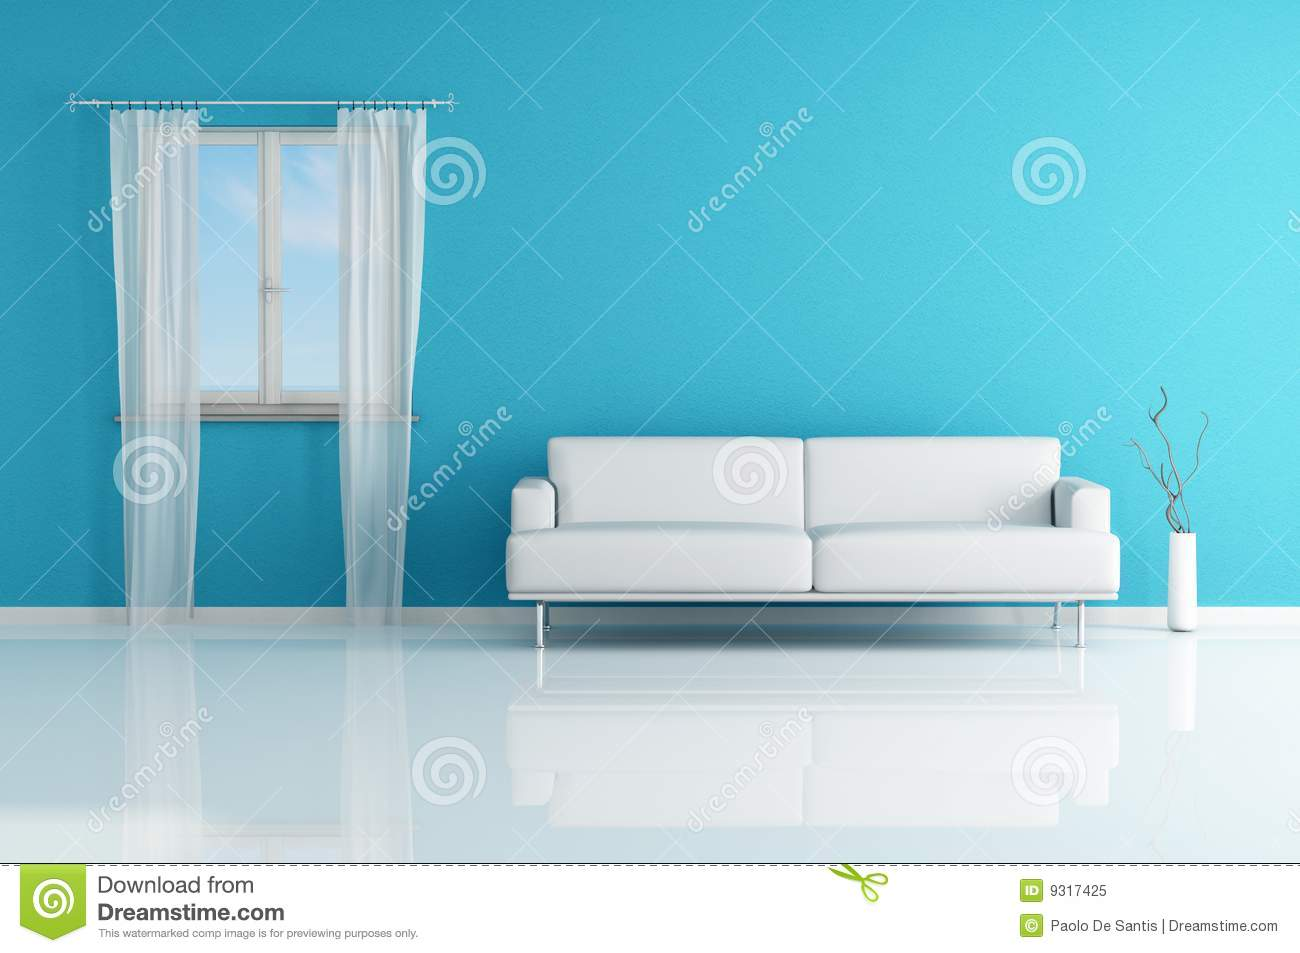 White sofa in a blue room royalty free stock photo image for The blue room